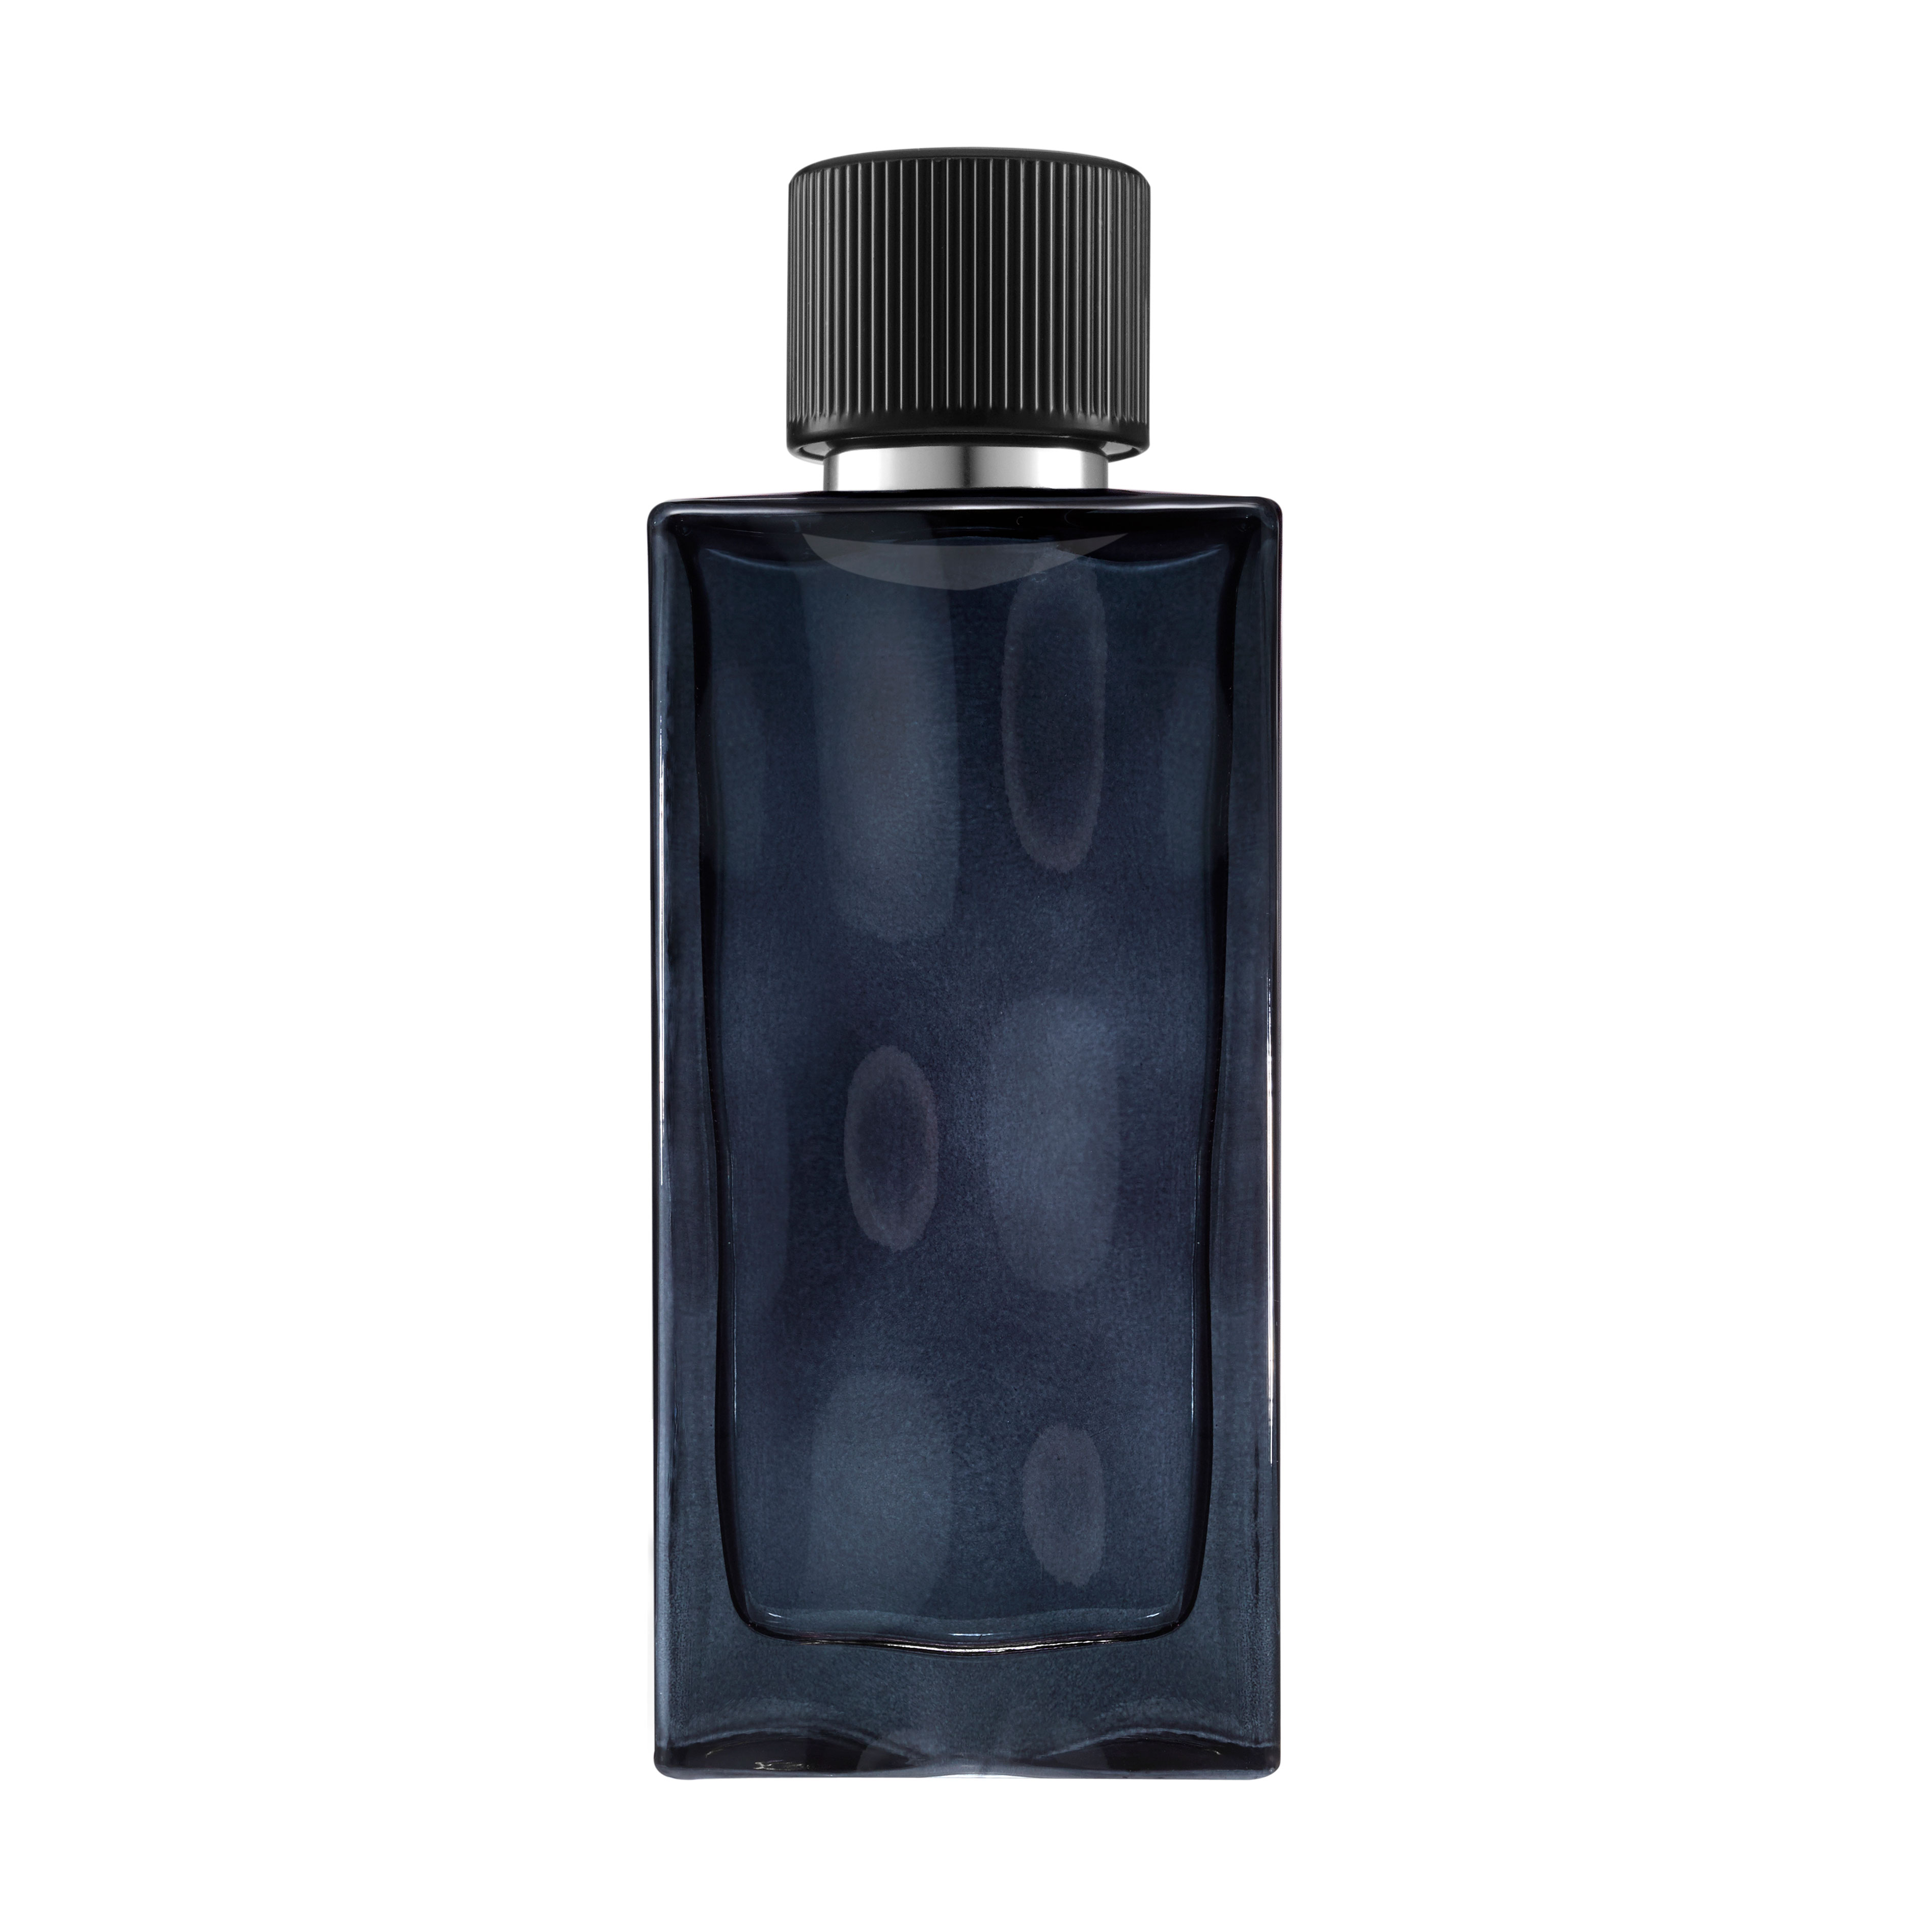 Fragrance Abercrombie & Fitch First Instinct Blue Eau de Toilette